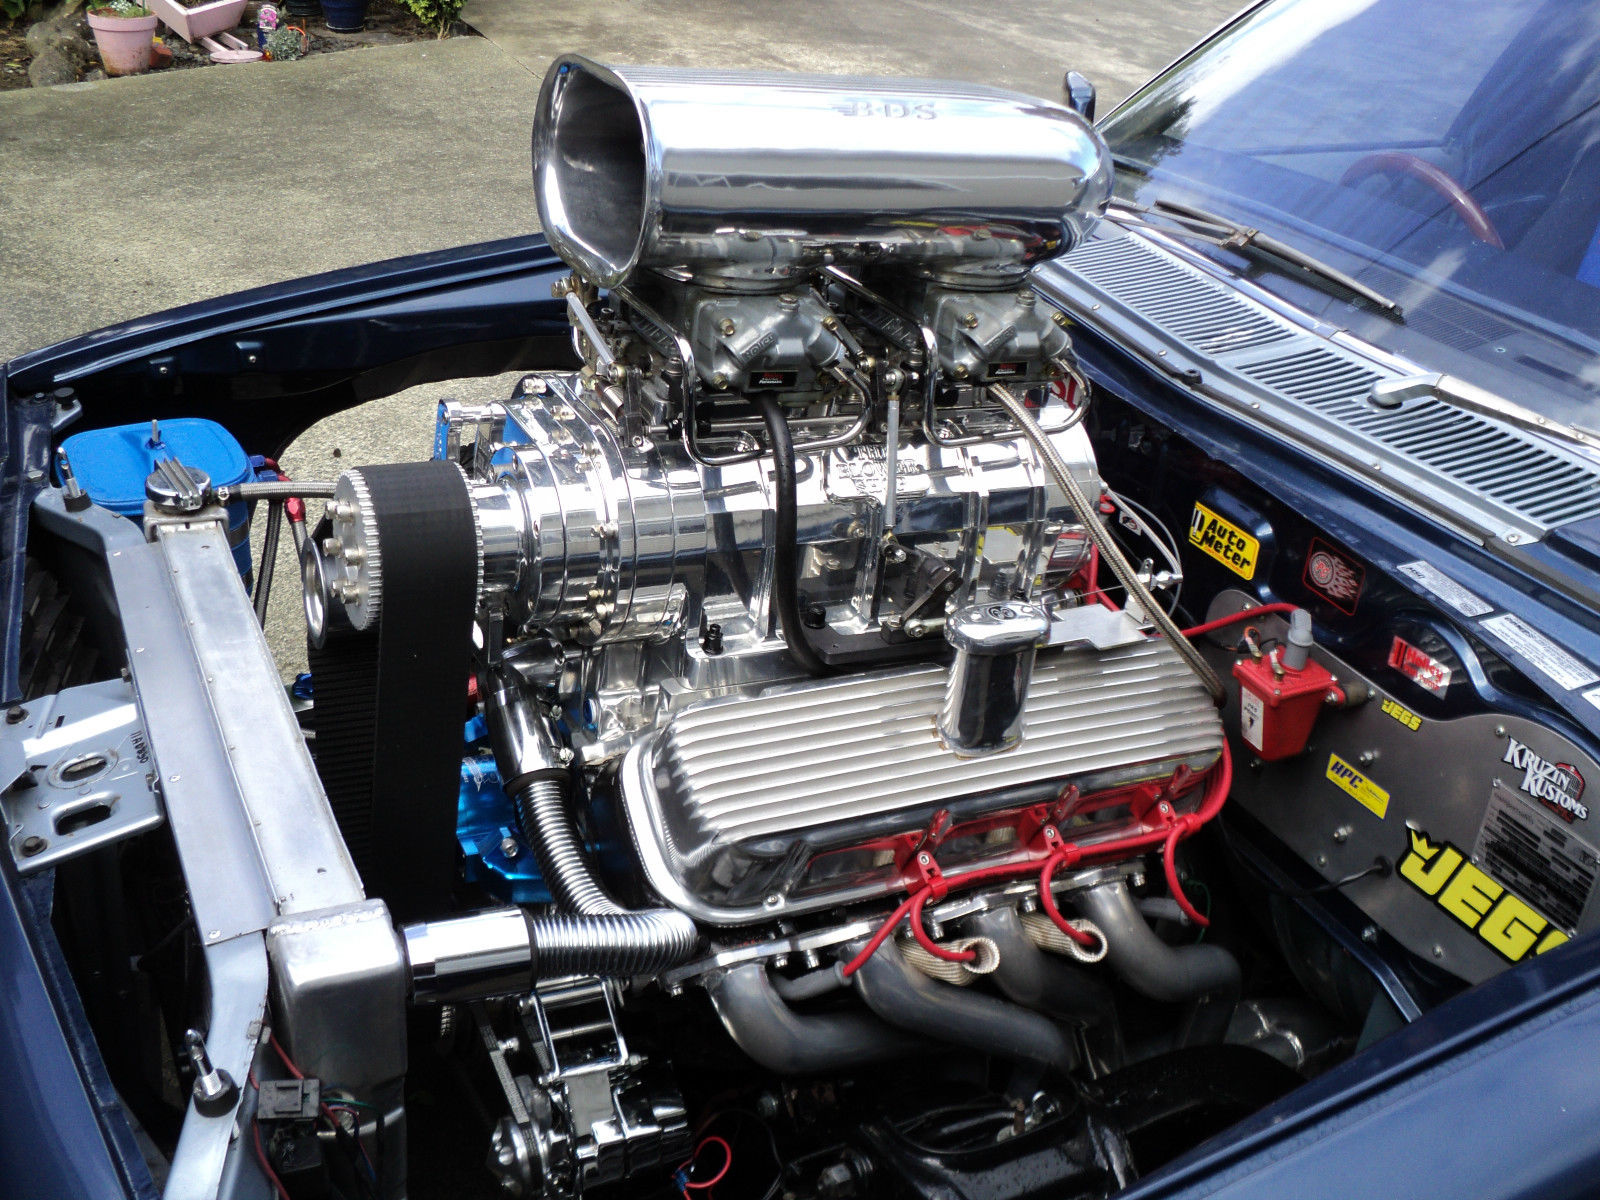 1972 Holden HQ Blown Drag Ute - Classic Other Makes Holden